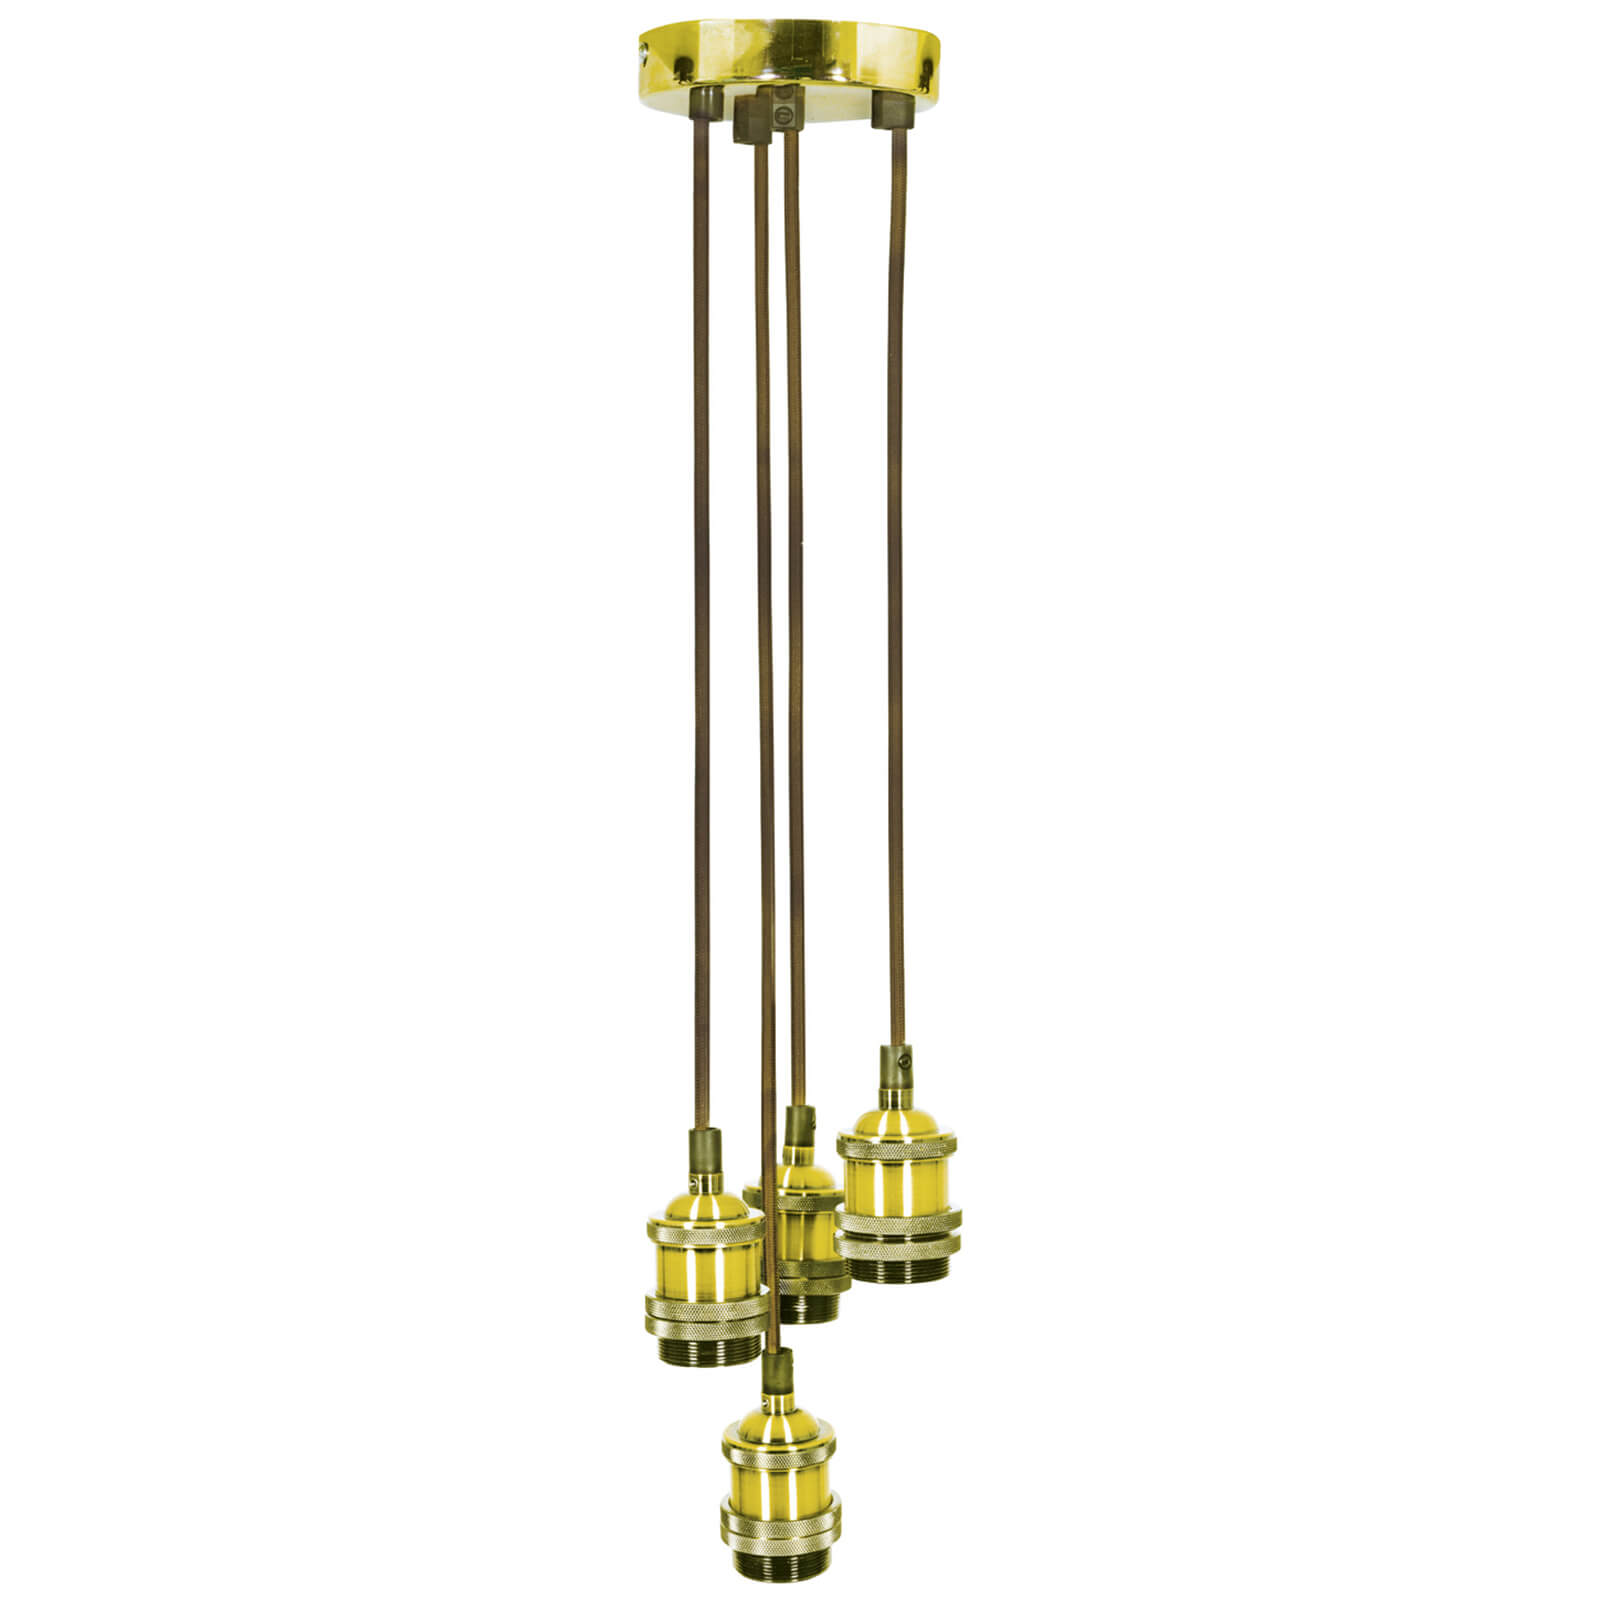 Lyyt Quad E27 Pendant Cord Set - Bright Gold